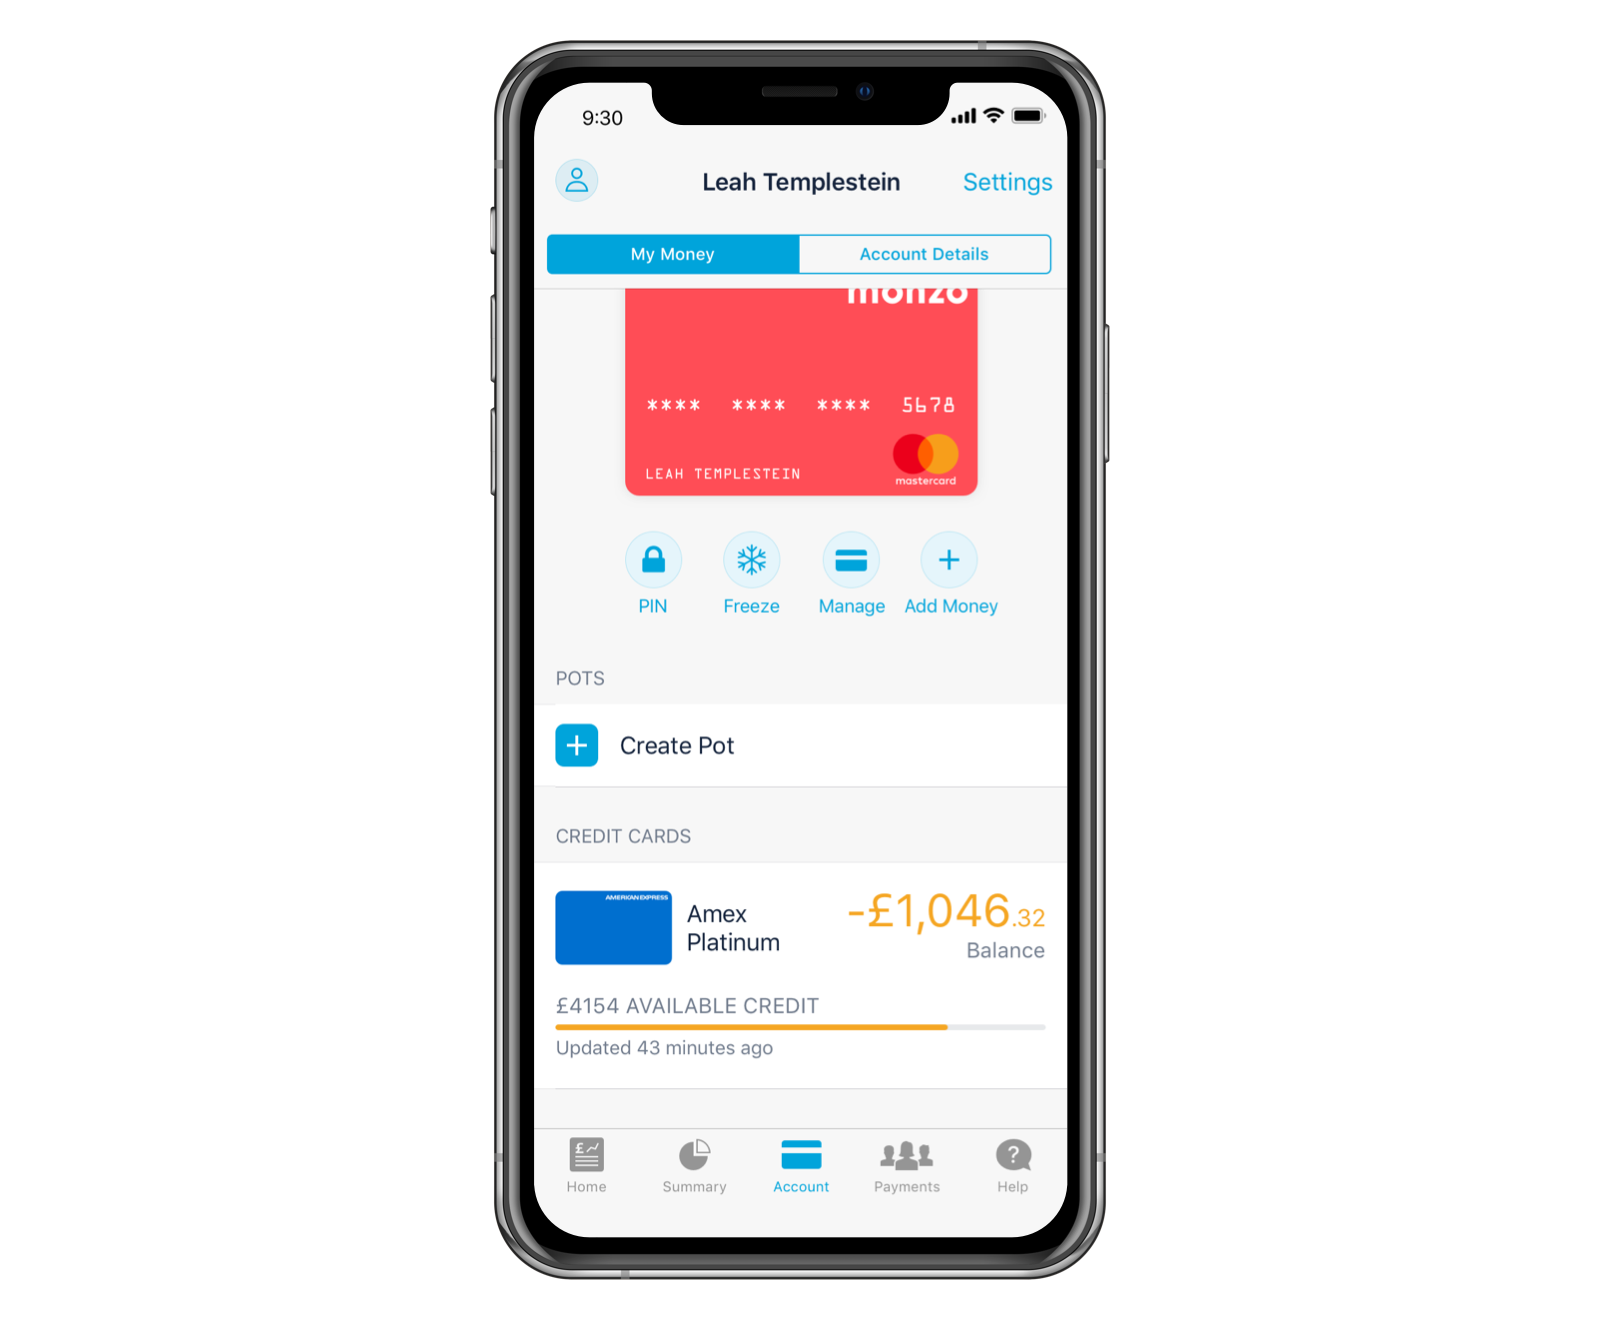 Amex balance in the app.